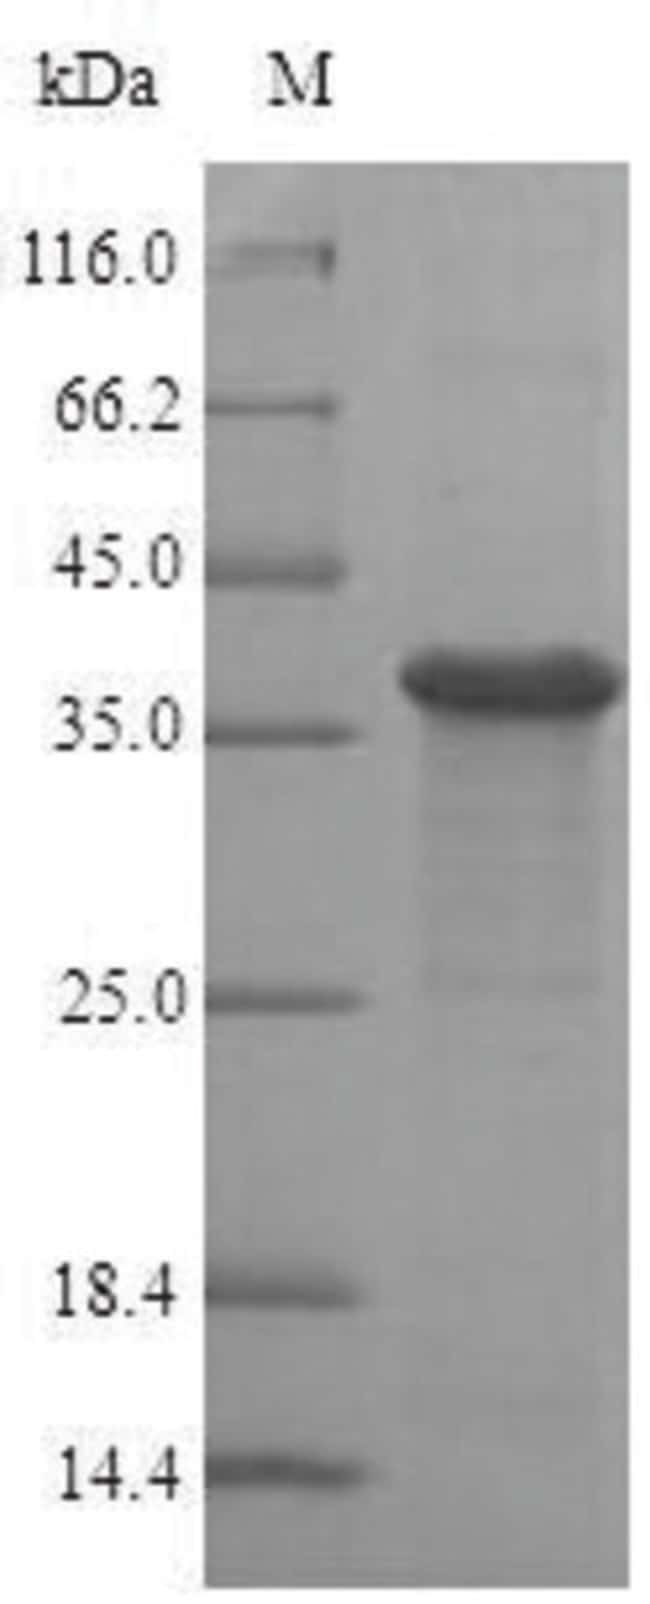 enQuireBio™ Recombinant Human Ras-related protein Rab-8A Protein 1mg enQuireBio™ Recombinant Human Ras-related protein Rab-8A Protein